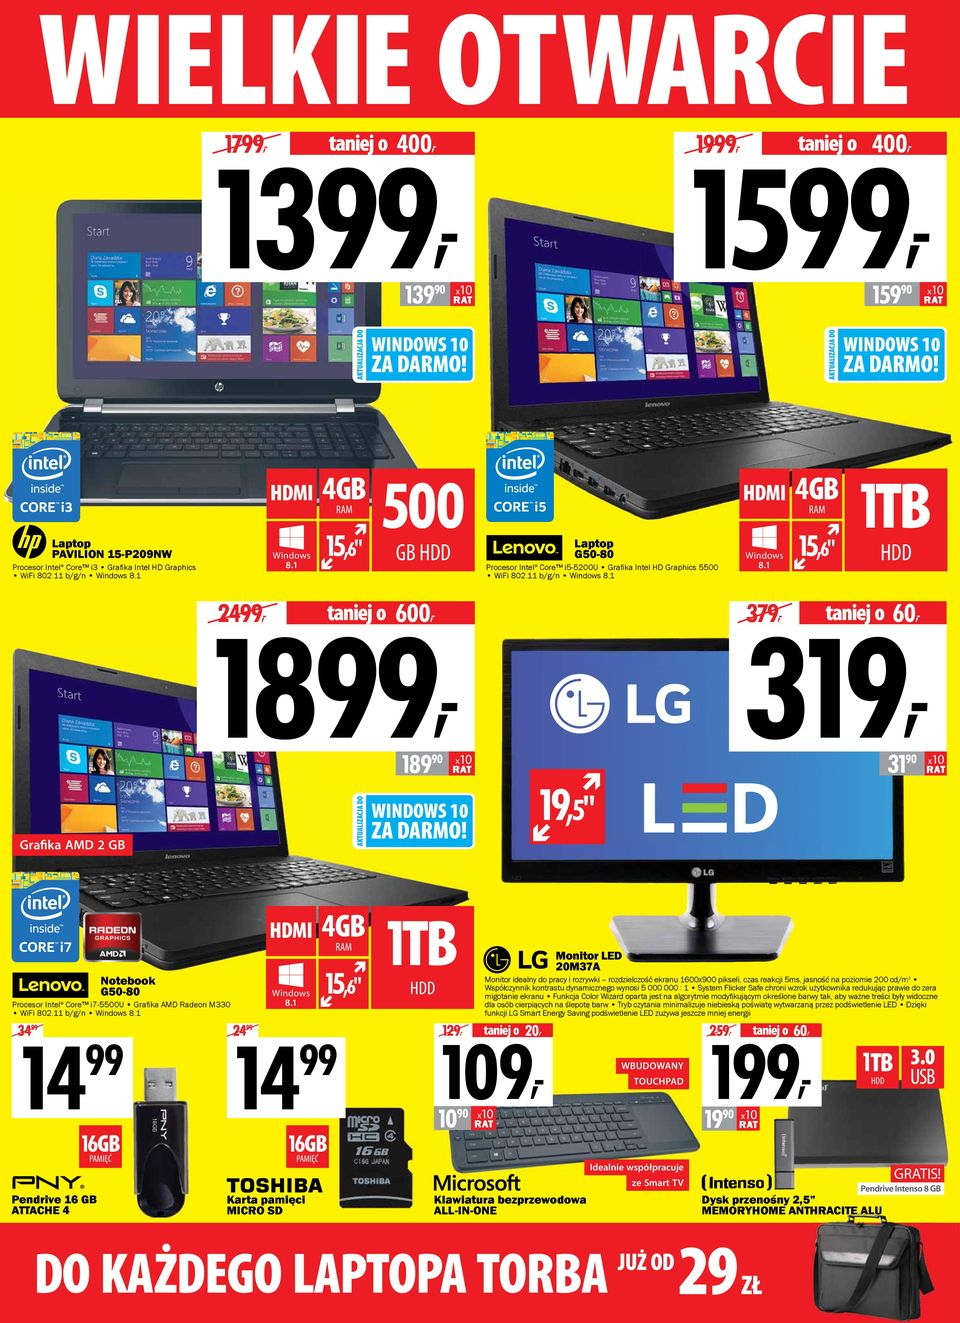 "1 HDD 379, 319, taniej o 60, 189 90 31 90 19,5"" Grafika AMD 2 GB Notebook G50-80 Procesor Intel Core i7-5500u Grafi ka AMD Radeon M330 WiFi 802.11 b/g/n Windows 8."